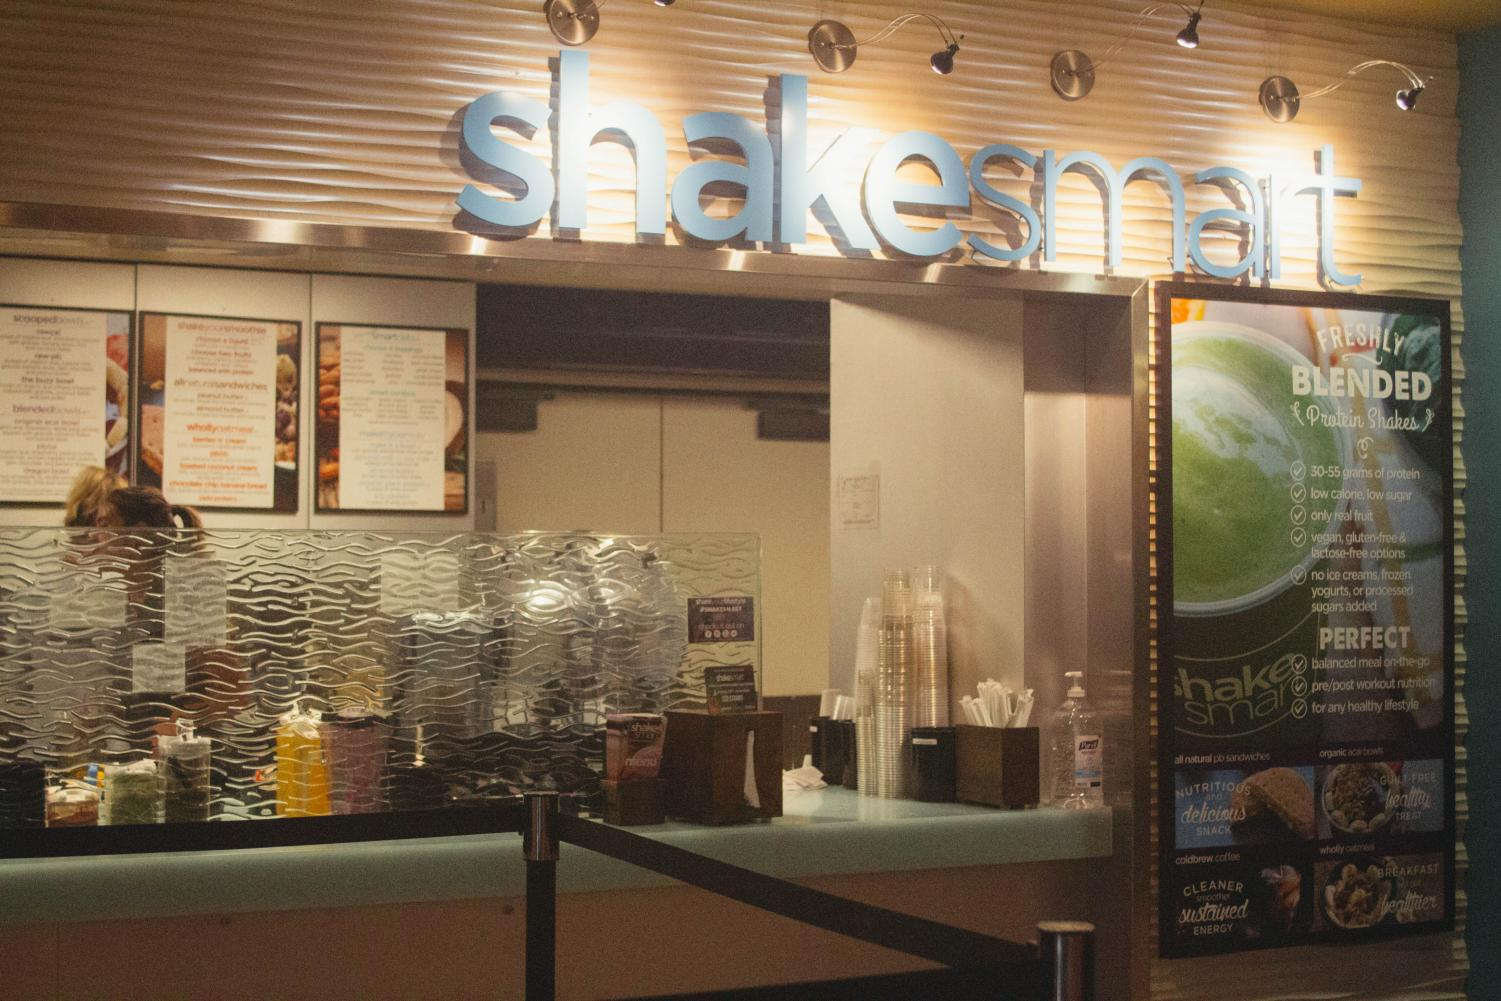 Shake Smart has two locations on campus, one in the Aztec Student Union and one outside of the Aztec Recreation Center.